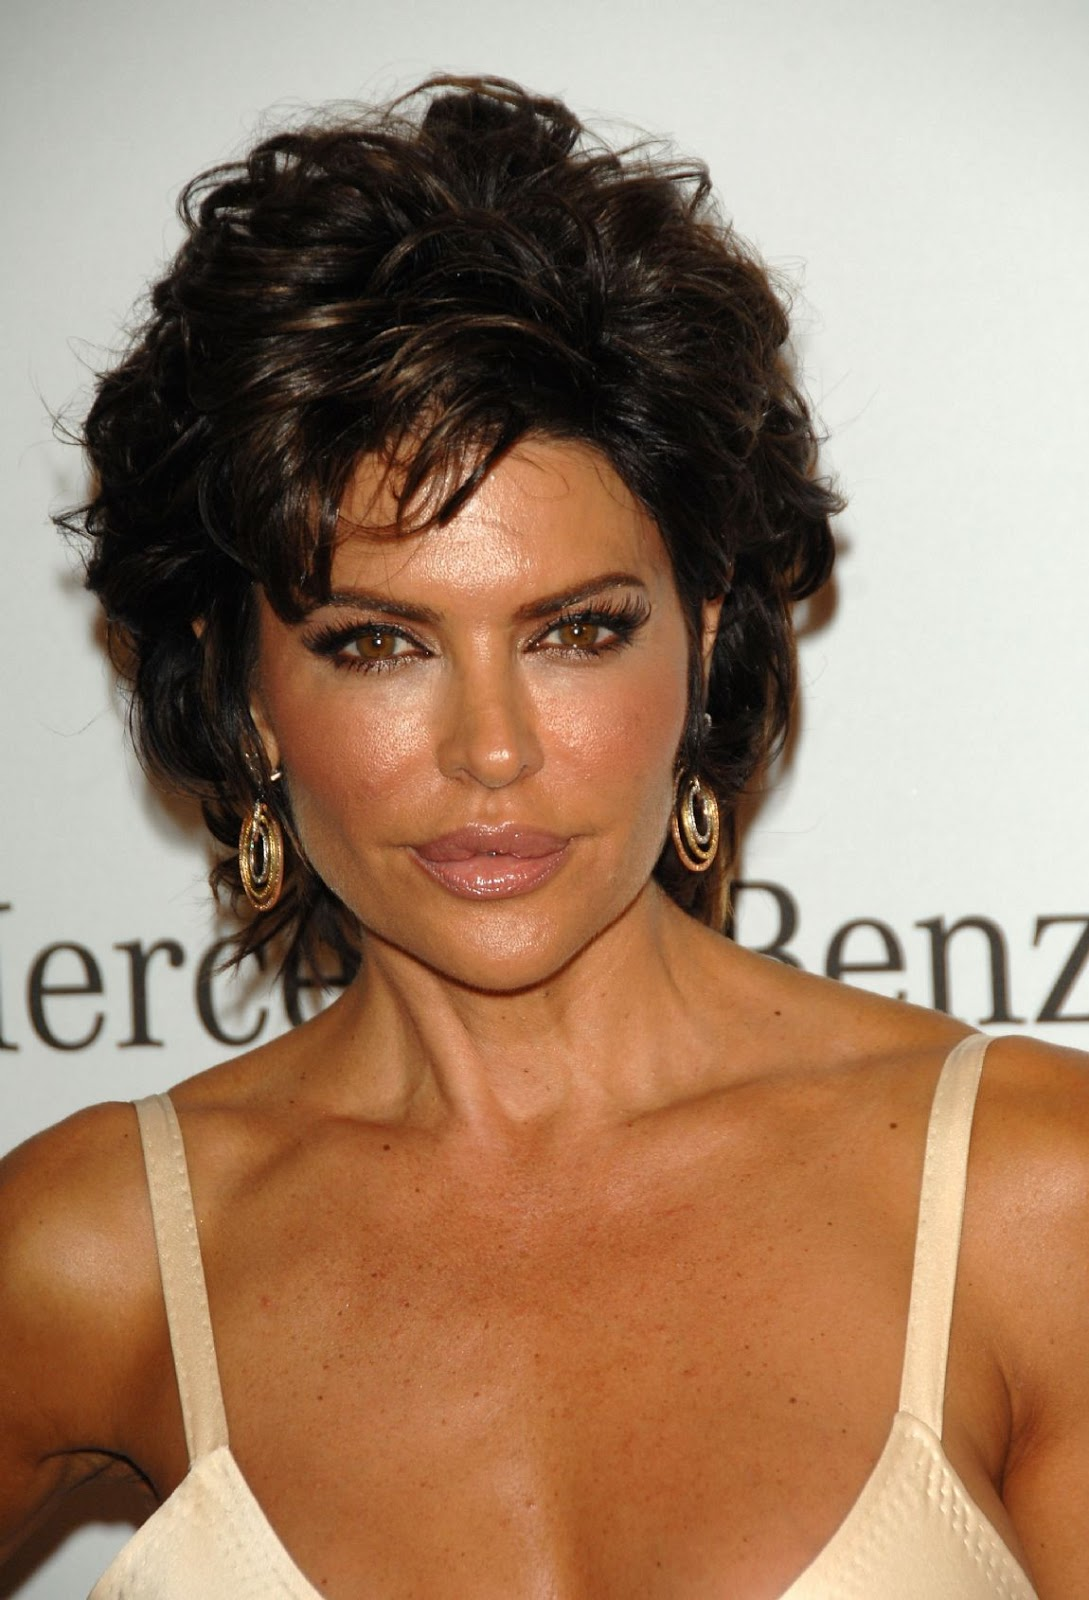 Celebrity Hairstyle Haircut Ideas: Lisa Rinna Short Hairstyle Haircut Ideas for Women